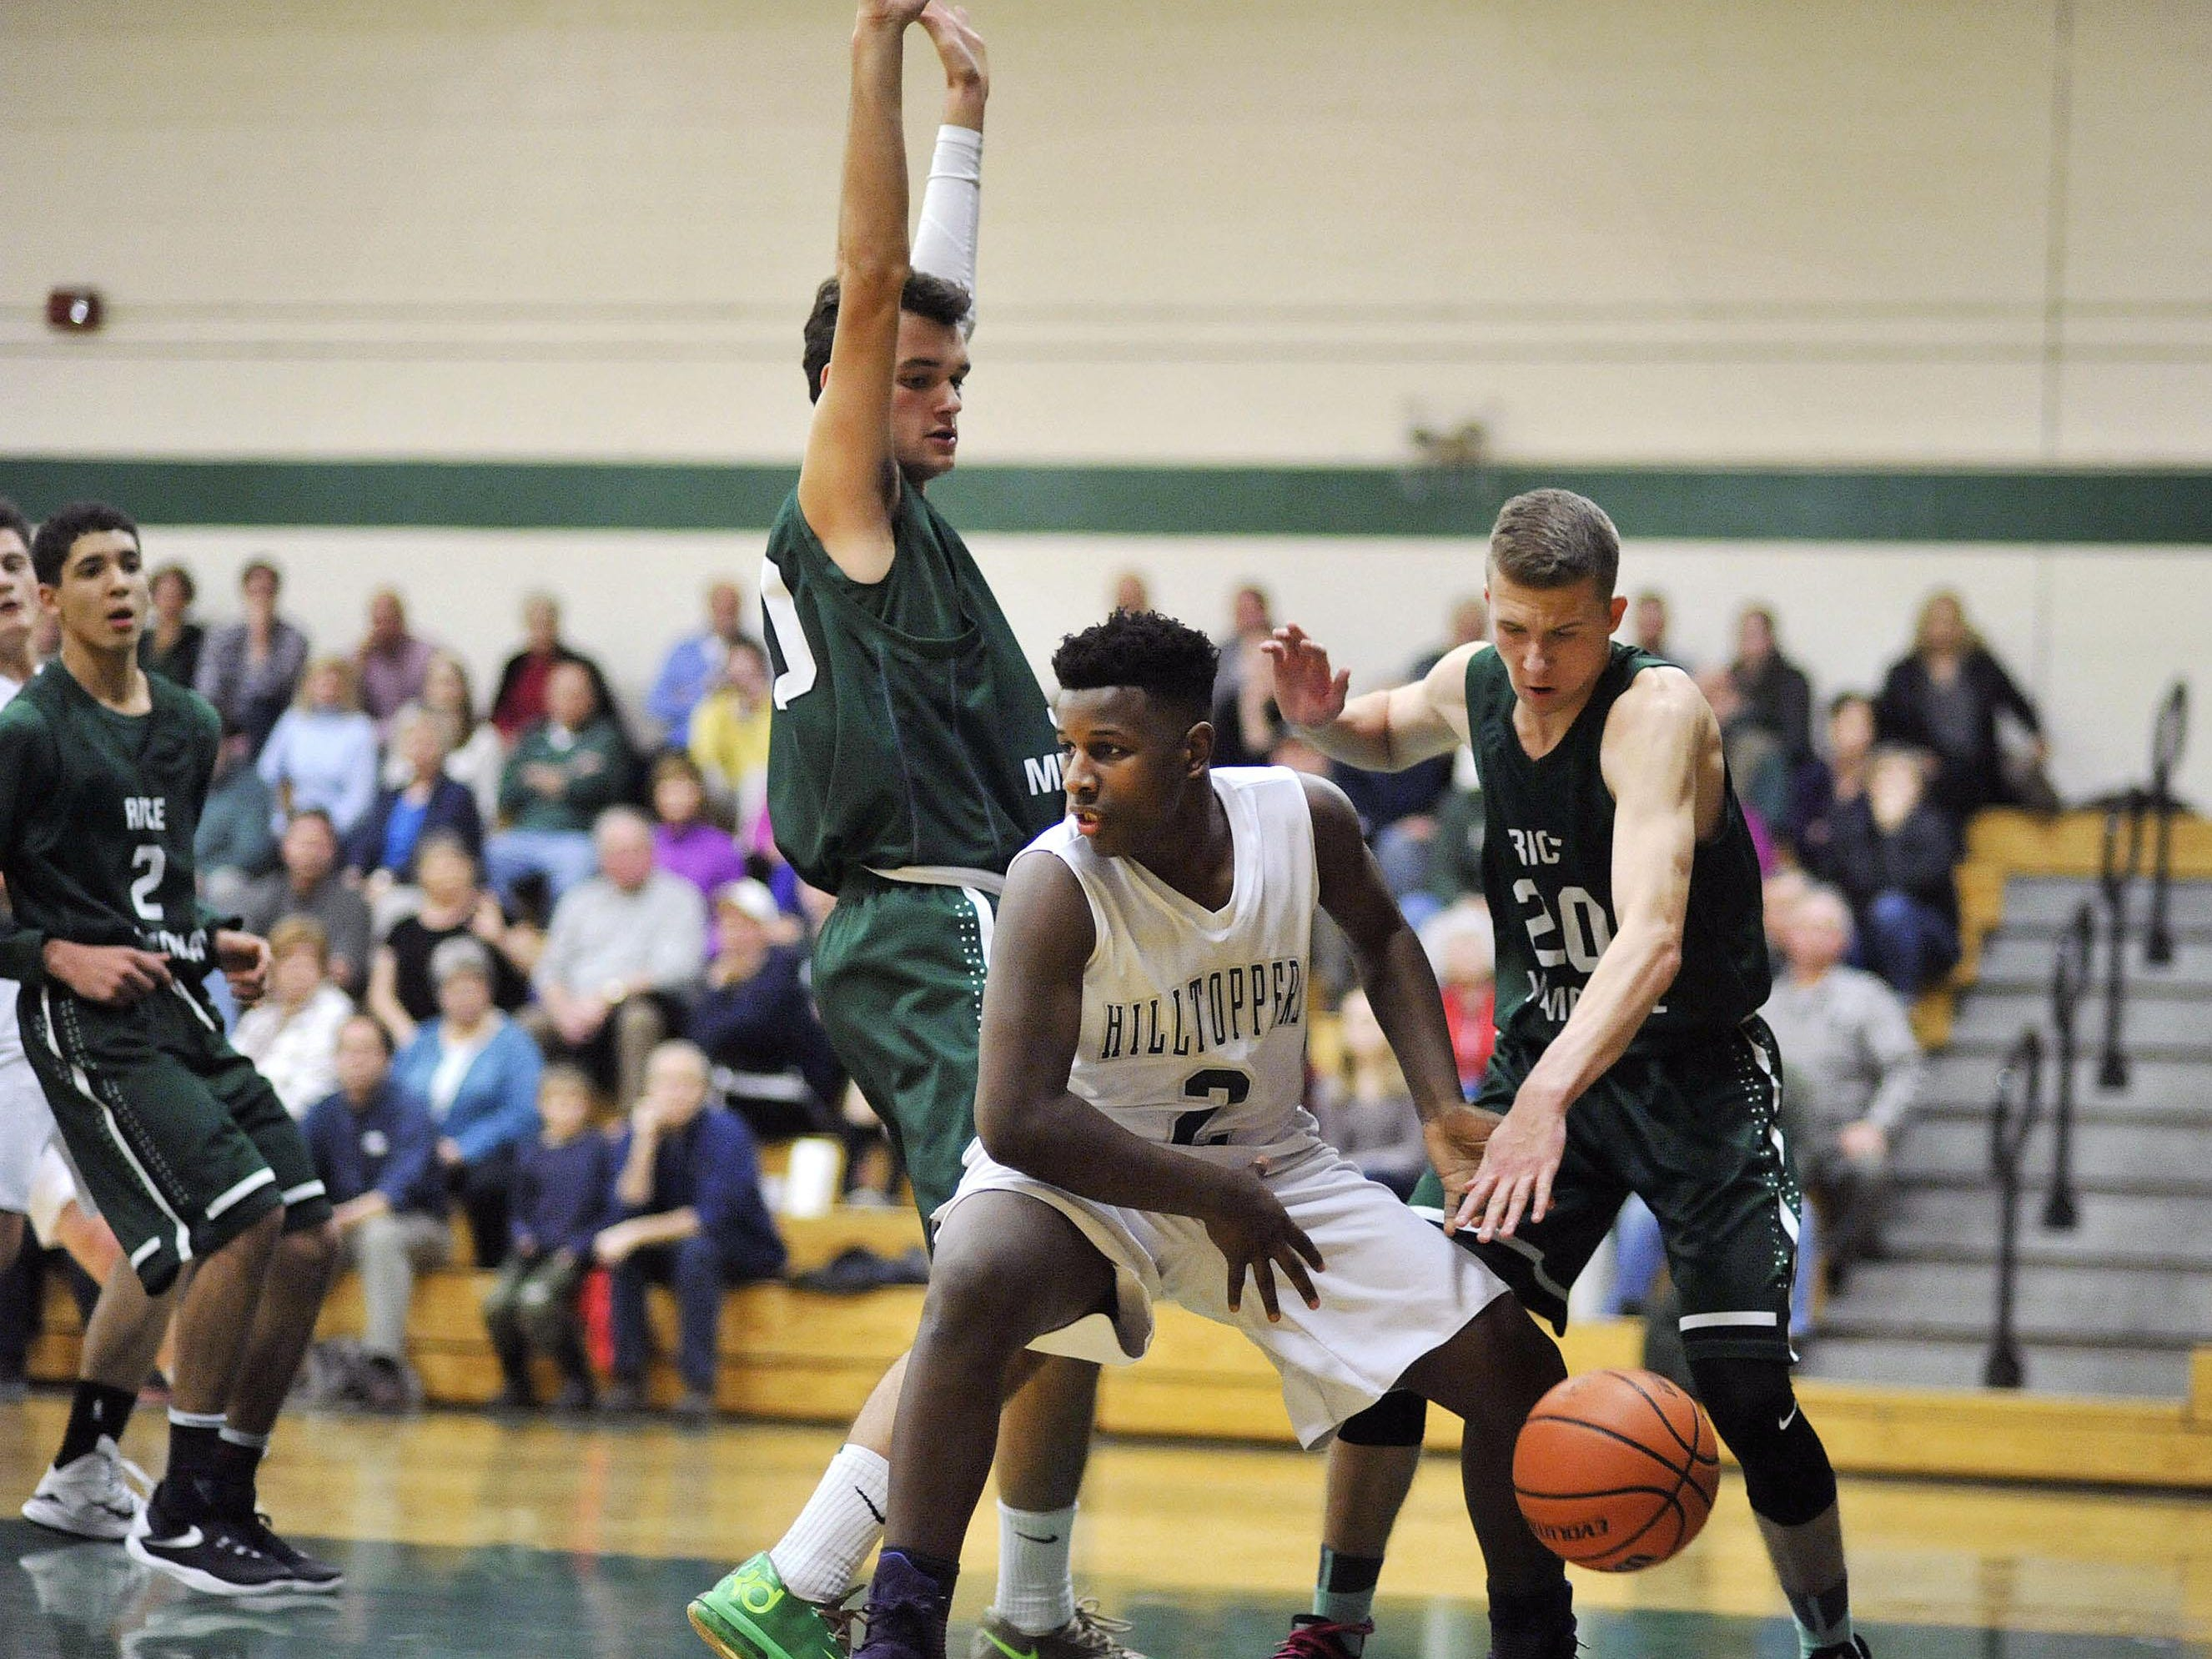 Rice's Elliot Nelson, right, strips the ball from St. Johnsbury's Nate Yates (2) during Tuesday night's high school boys basketball game in St. Johnsbury.